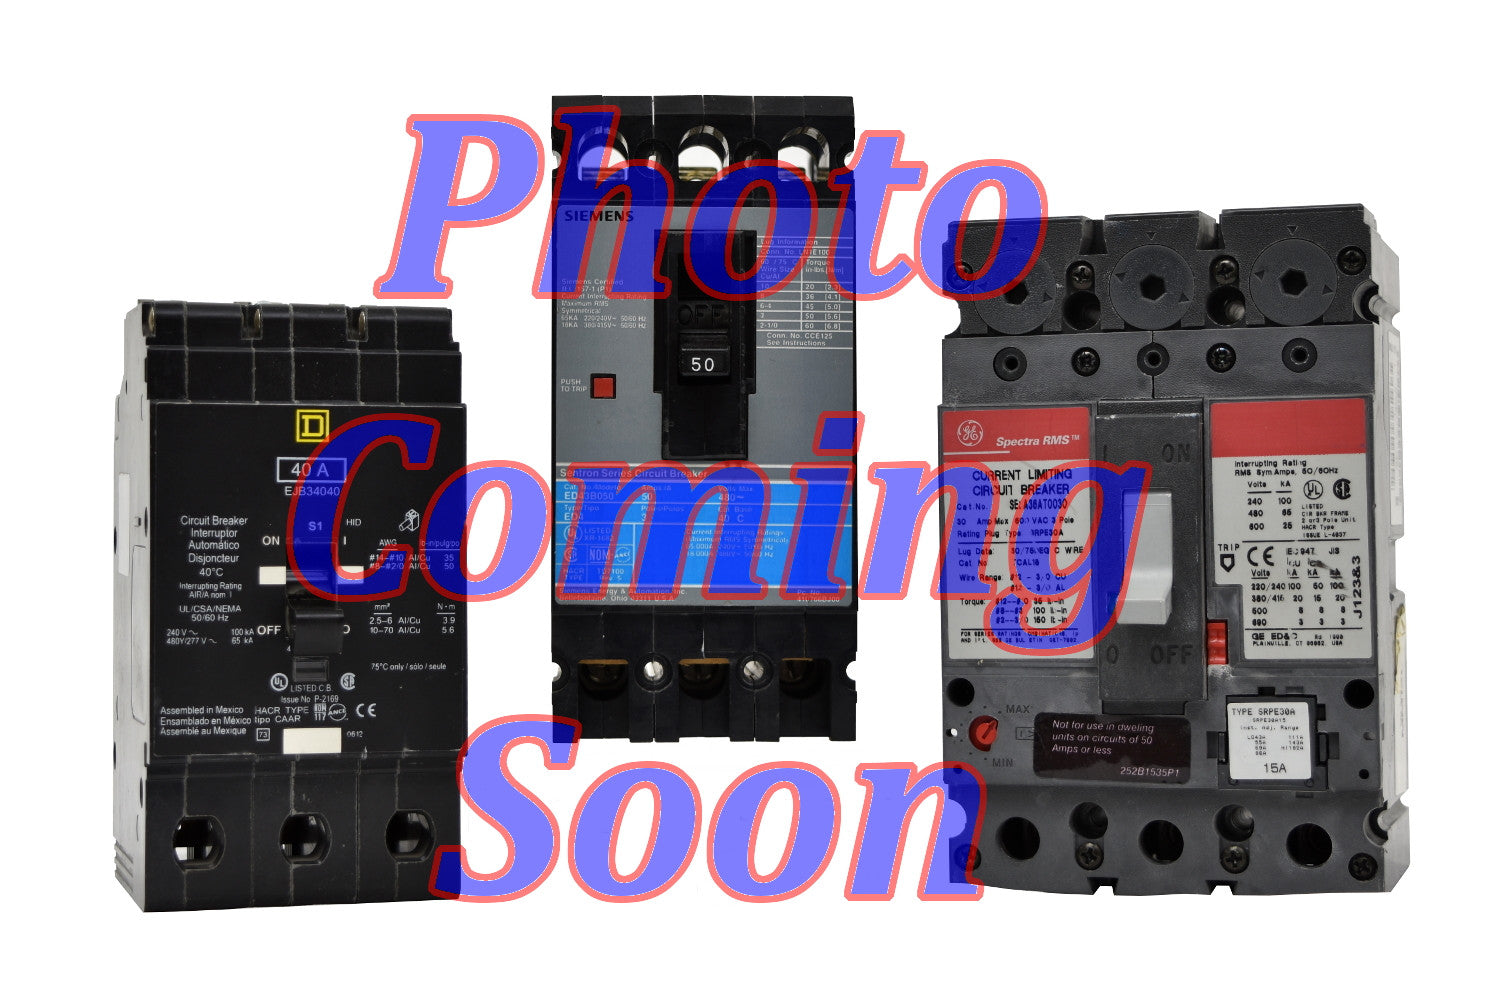 General Electric FCV326TE070R2 Circuit Breakers